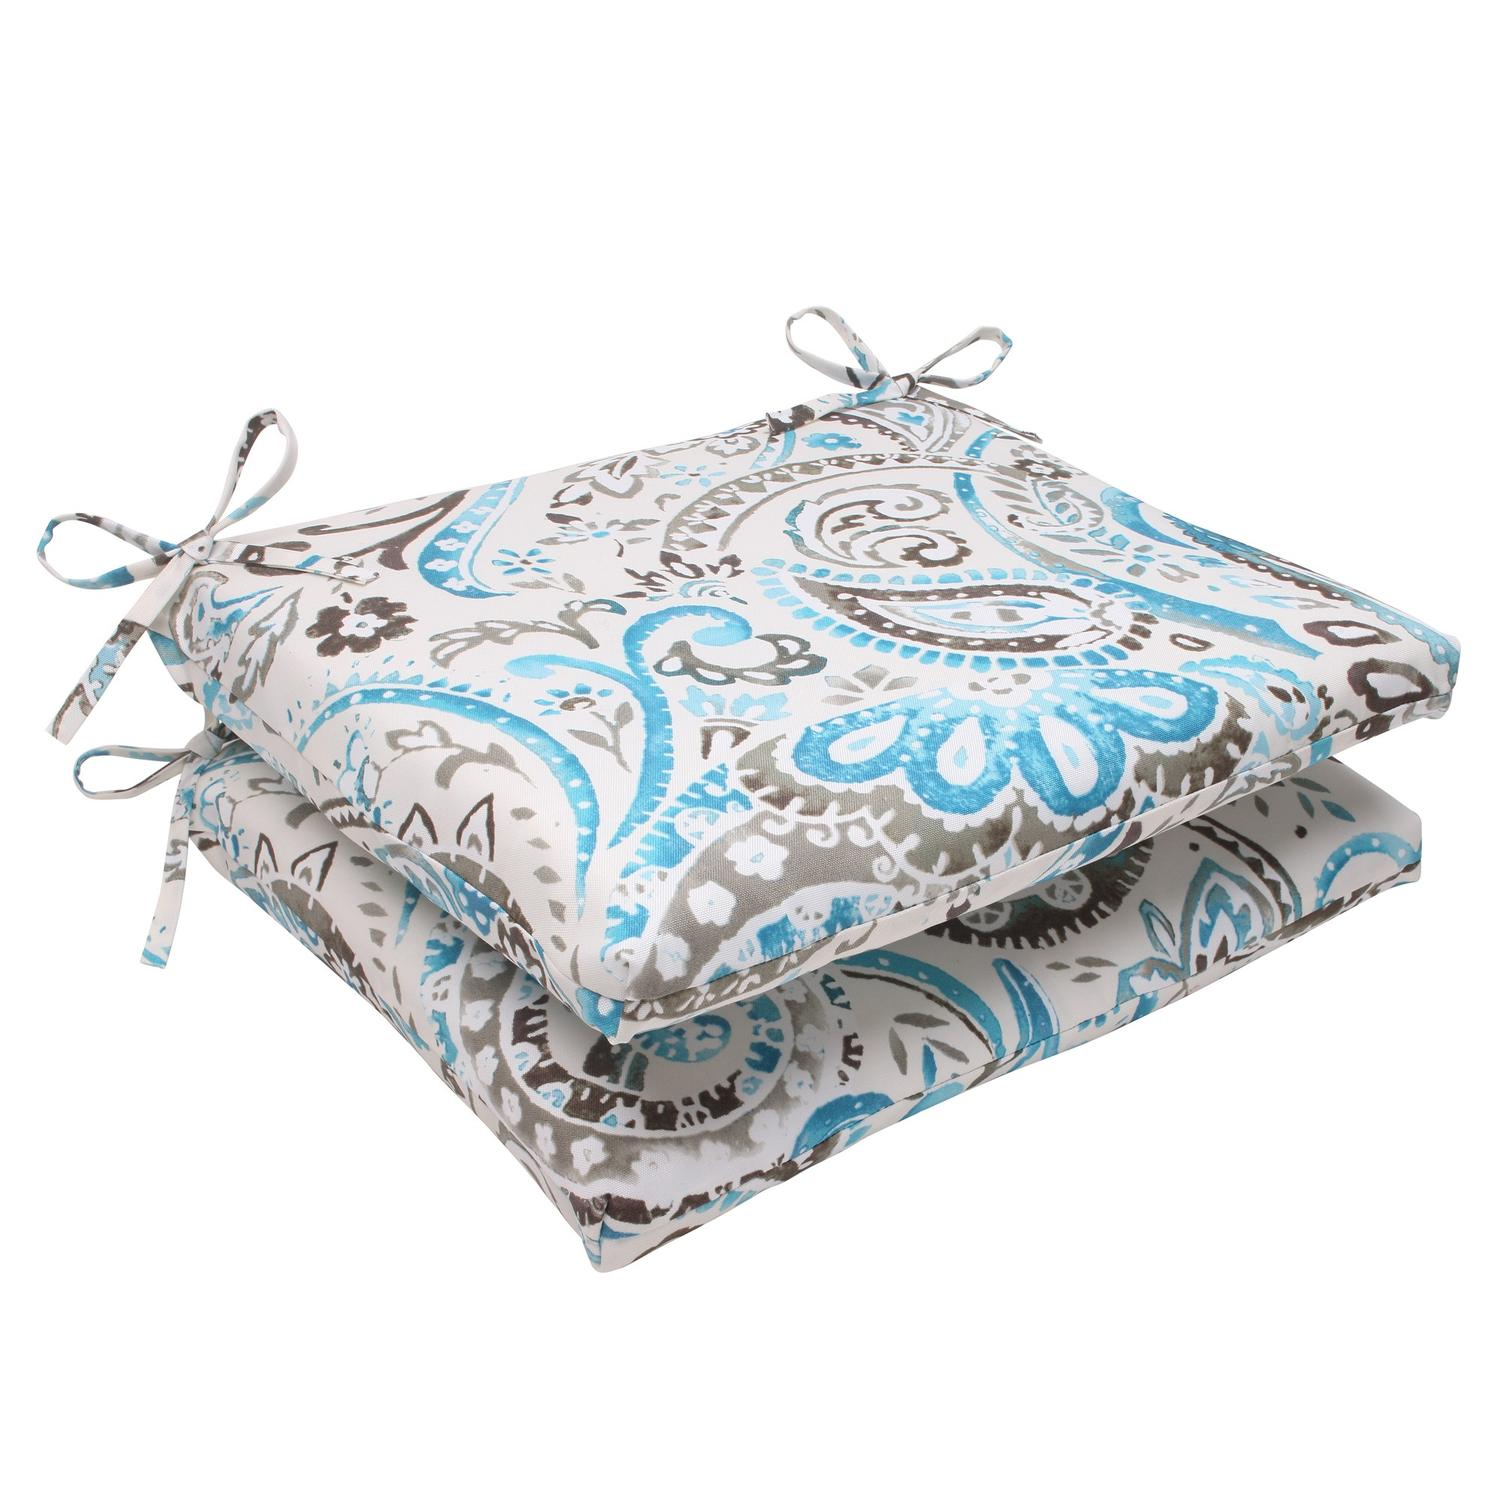 Set of 2 Turquoise & Gray Paisley Swirl Outdoor Square Chair Cushions 18.5""